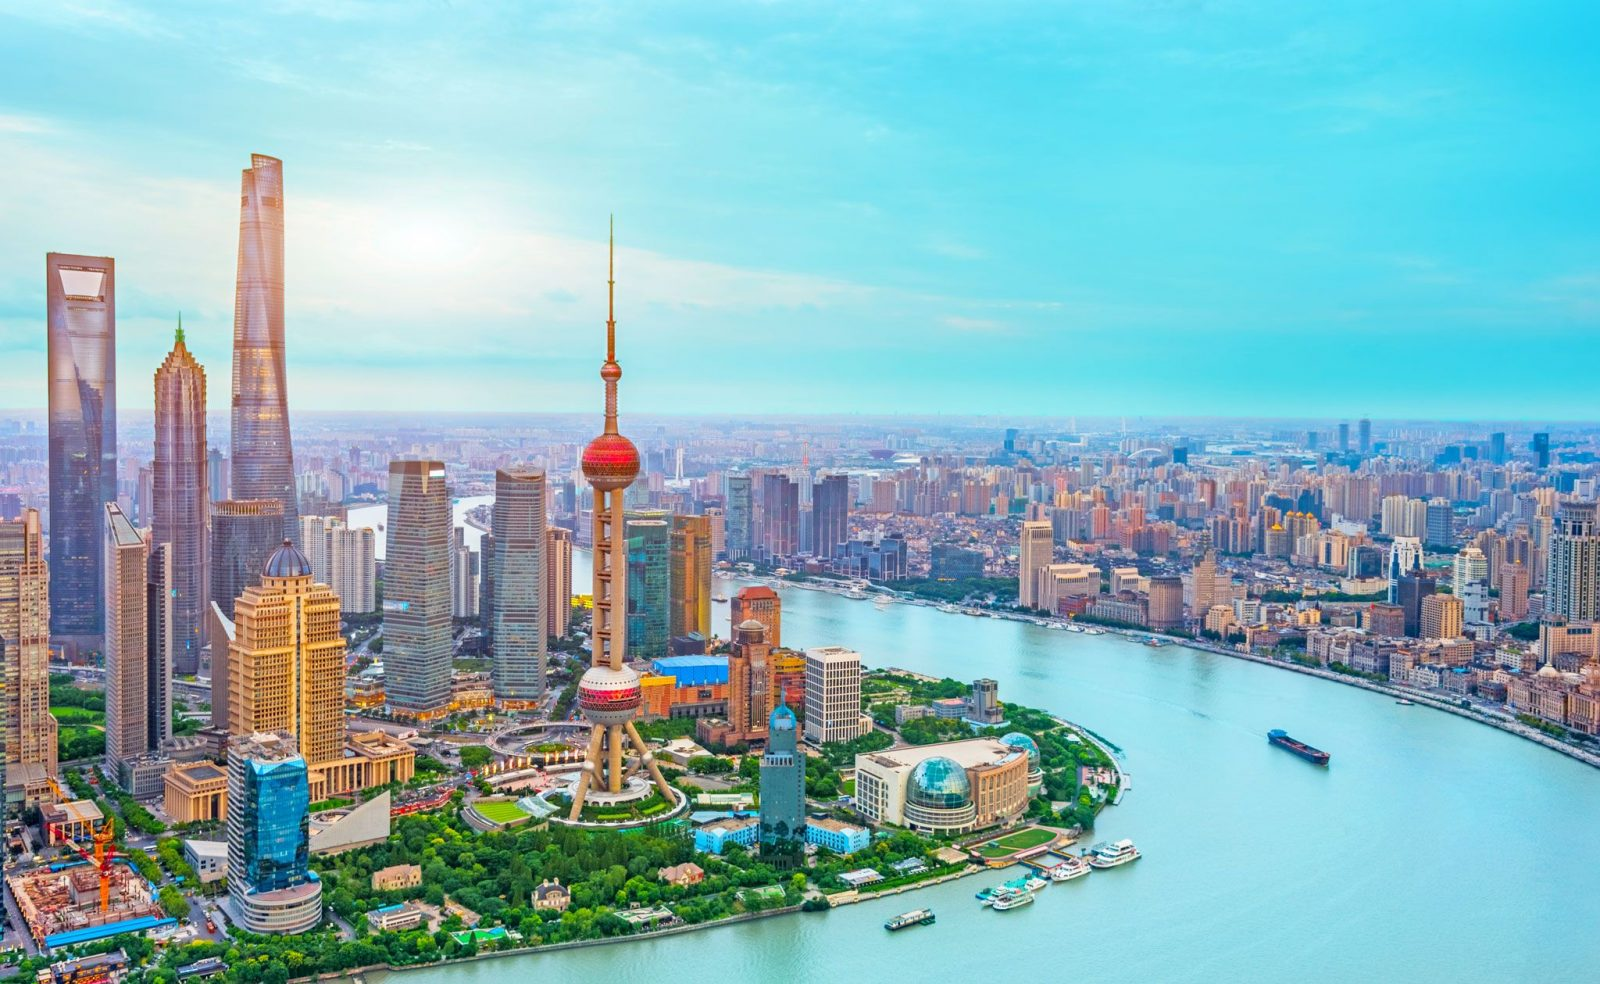 Image for Fully inclusive paid teaching internship around Shanghai. Perfect for first time English teachers, internationally accredited TEFL training included.